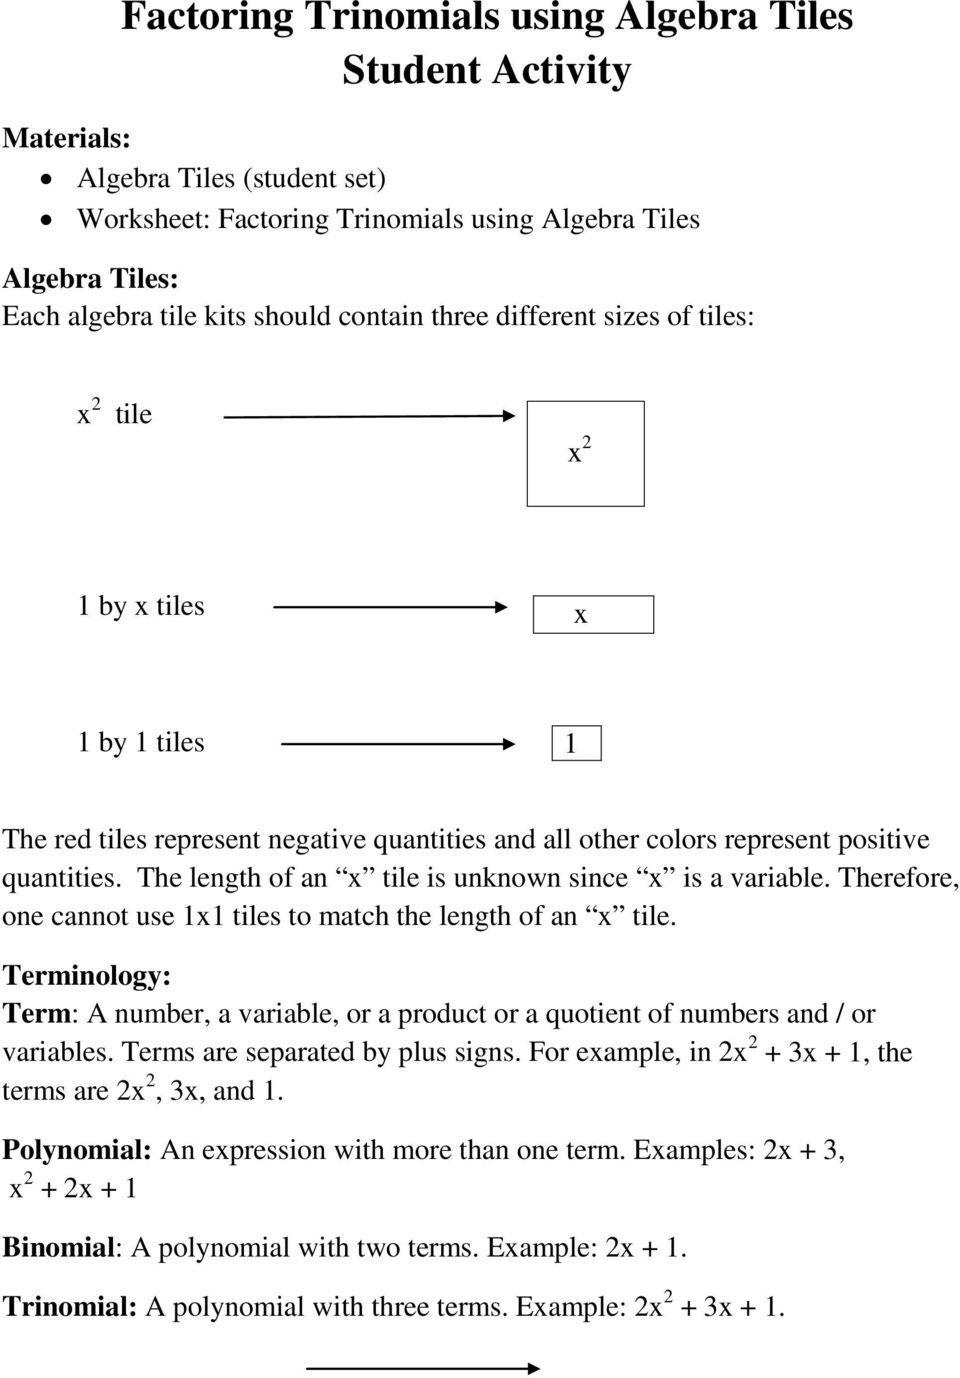 Free Worksheet Factoring Quadratic Expressions Worksheet factoring quadratics worksheet doc templates and worksheets quadratic equations worksheets